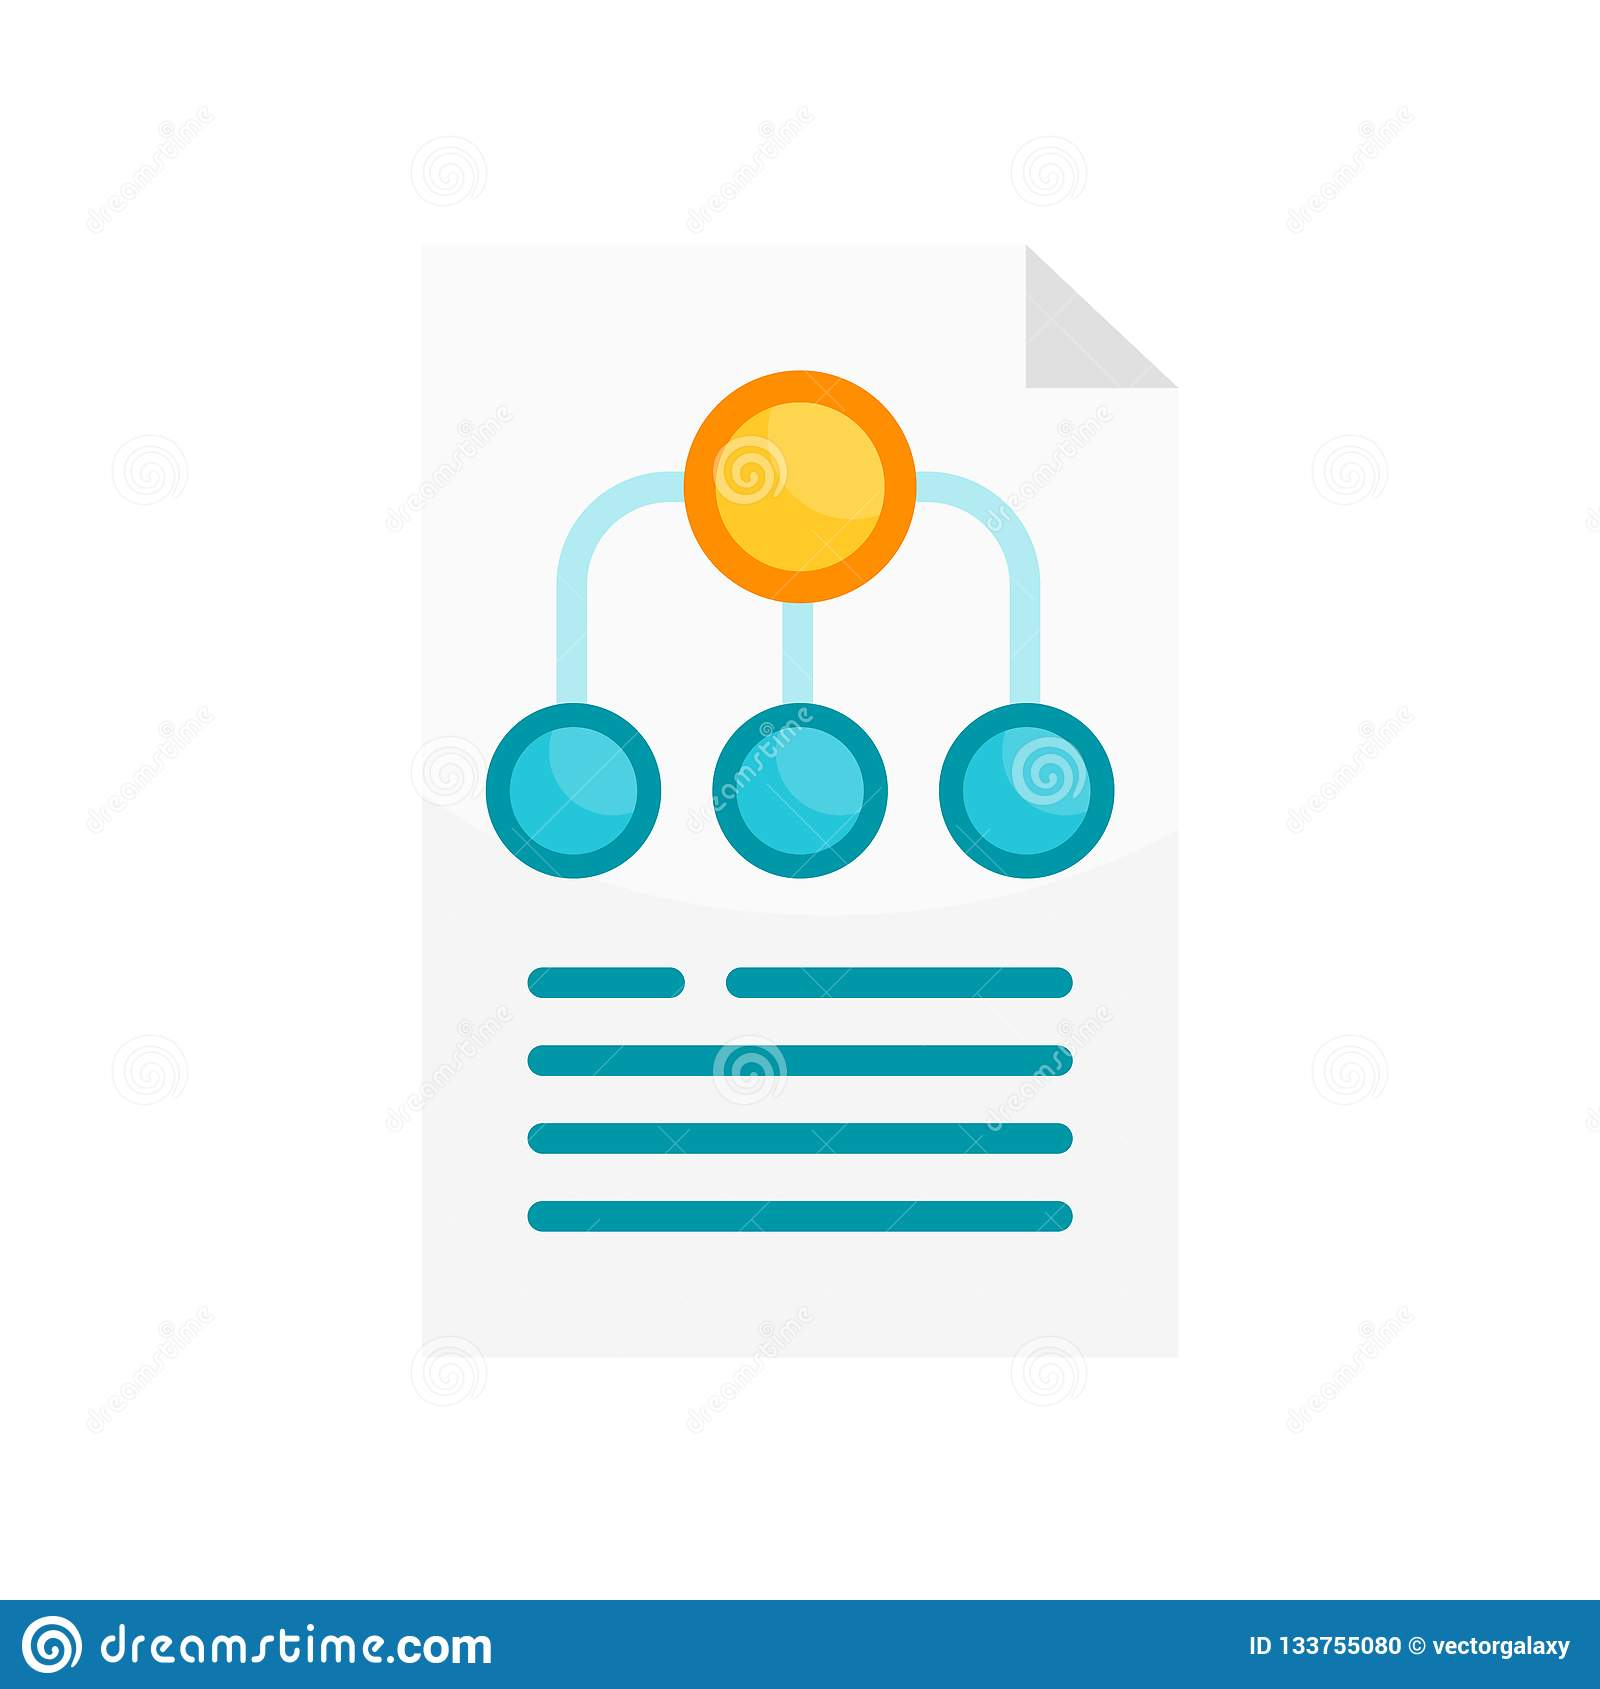 Hierarchy structure icon vector sign and symbol isolated on whit